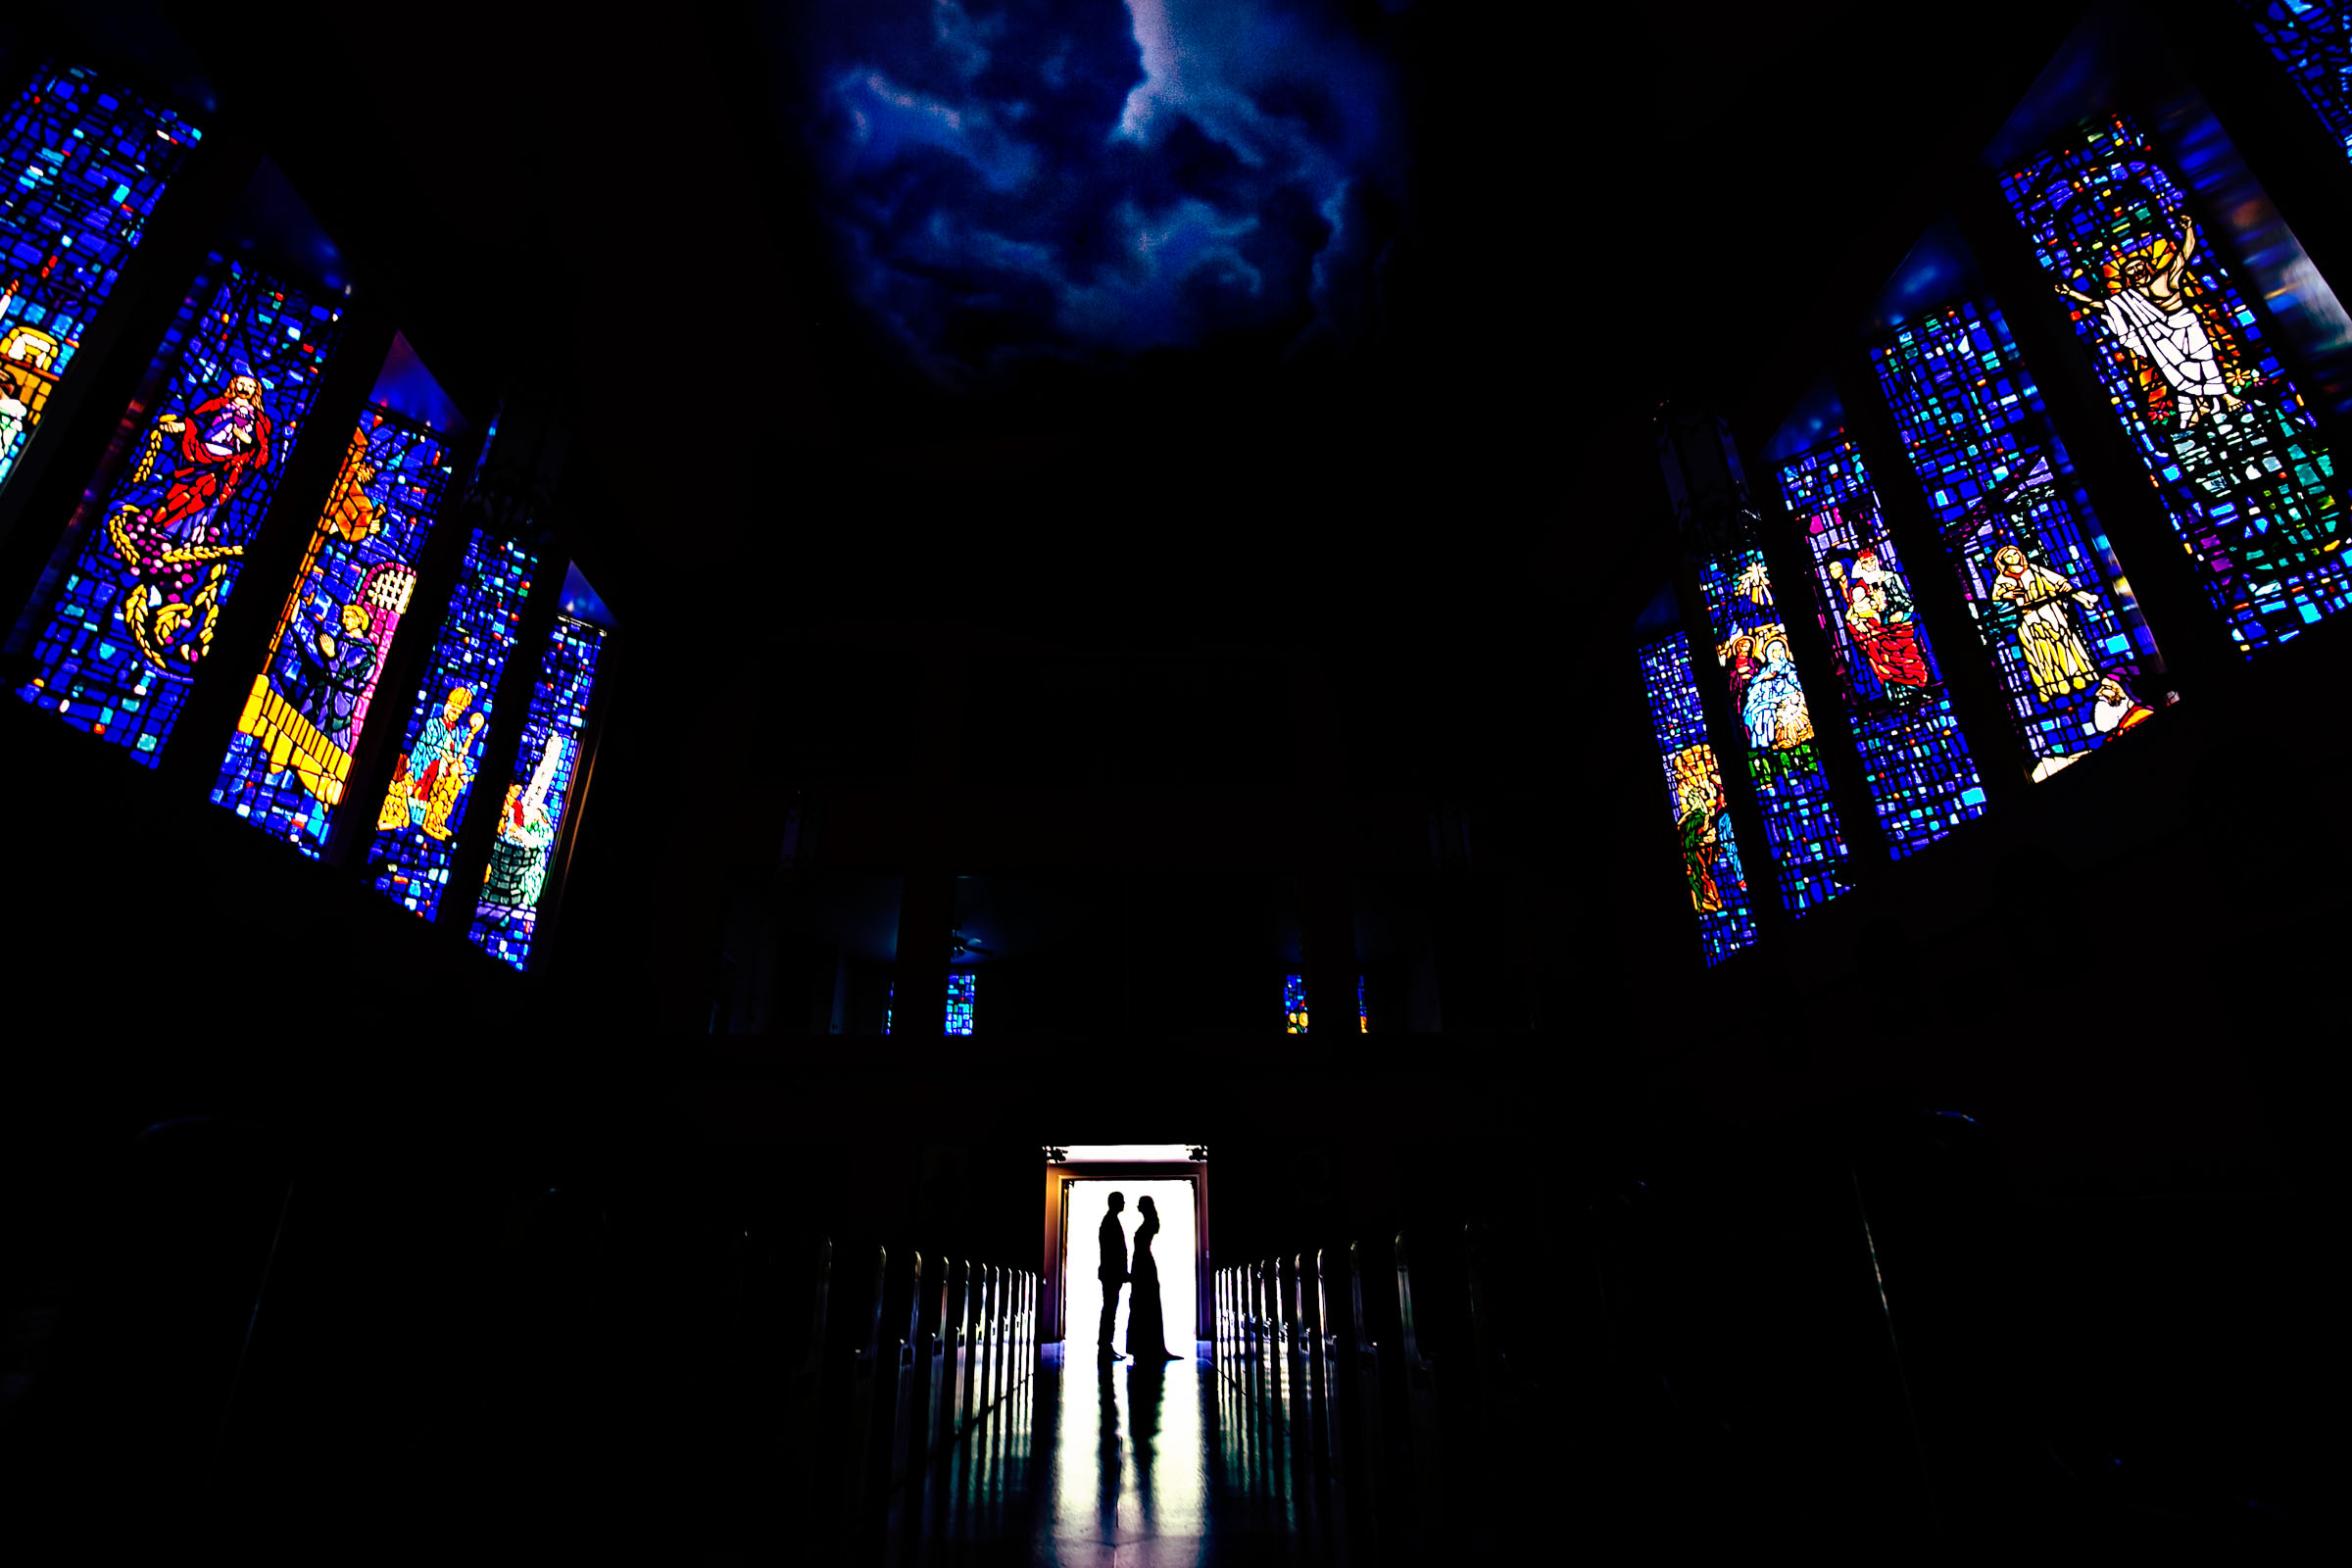 Couple silhouette with stained glass windows and nighttime sky - photo by Marissa Joy Photography